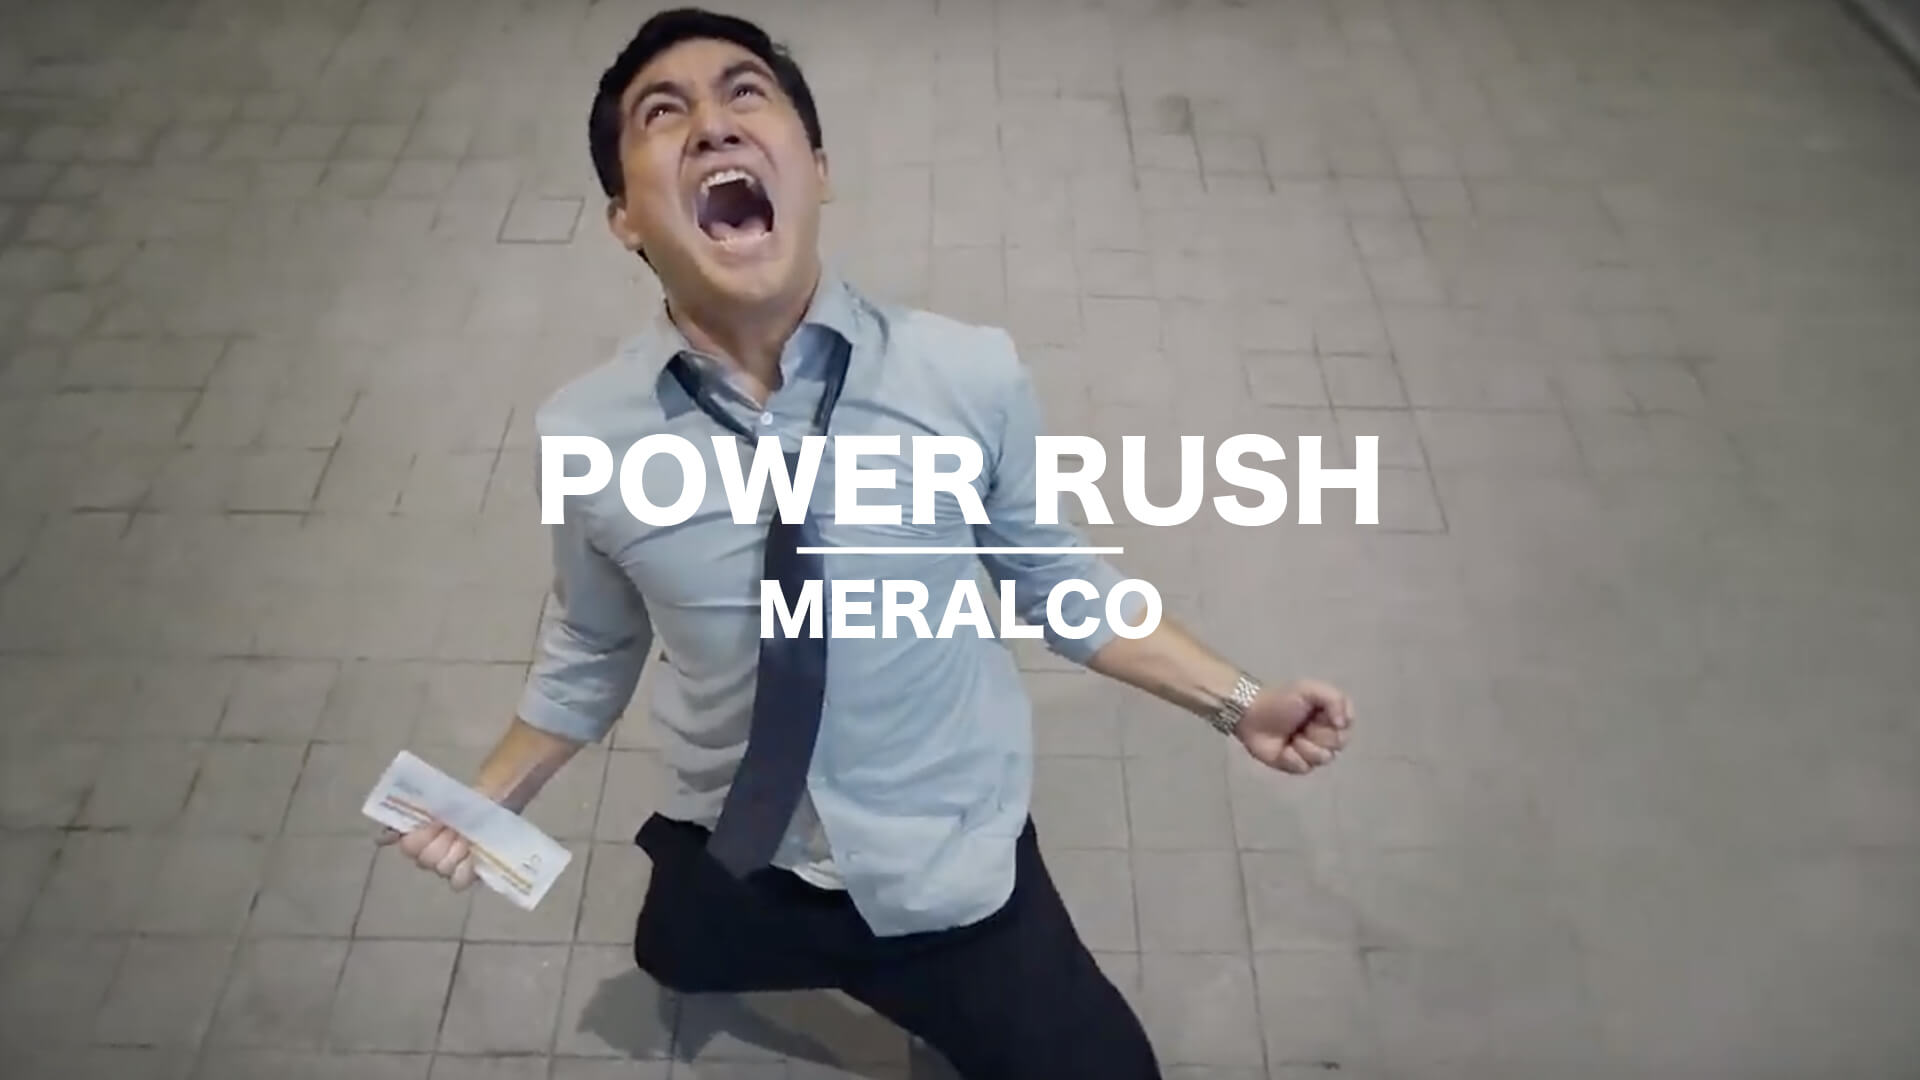 Project Power Rush the Manila Electric Company Digital